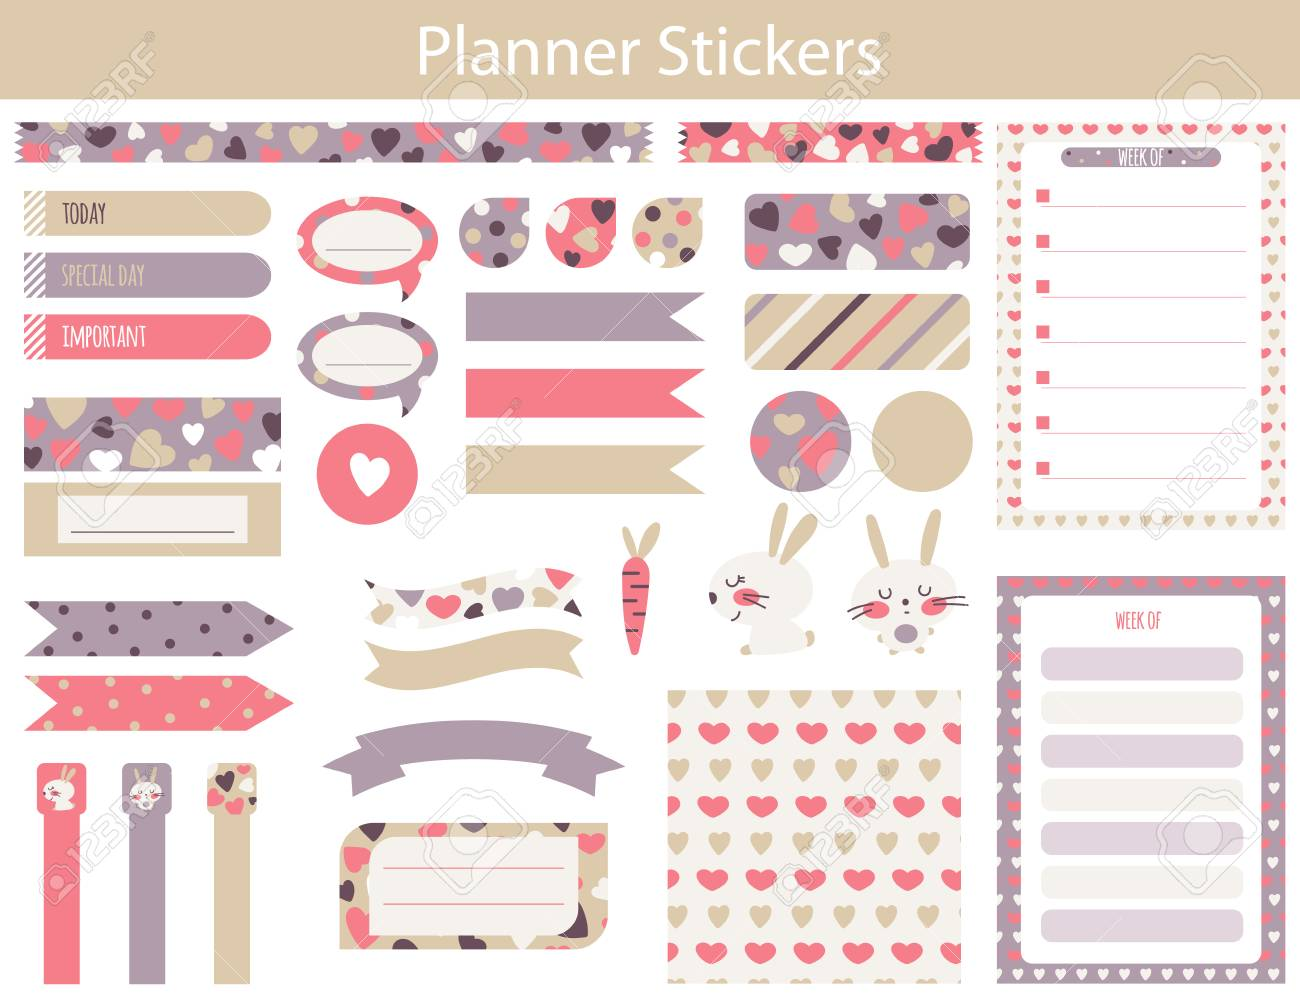 photo regarding Weekly Planner Pages called Planner stickers with lovable hare, carrot and hearts Within just easy..